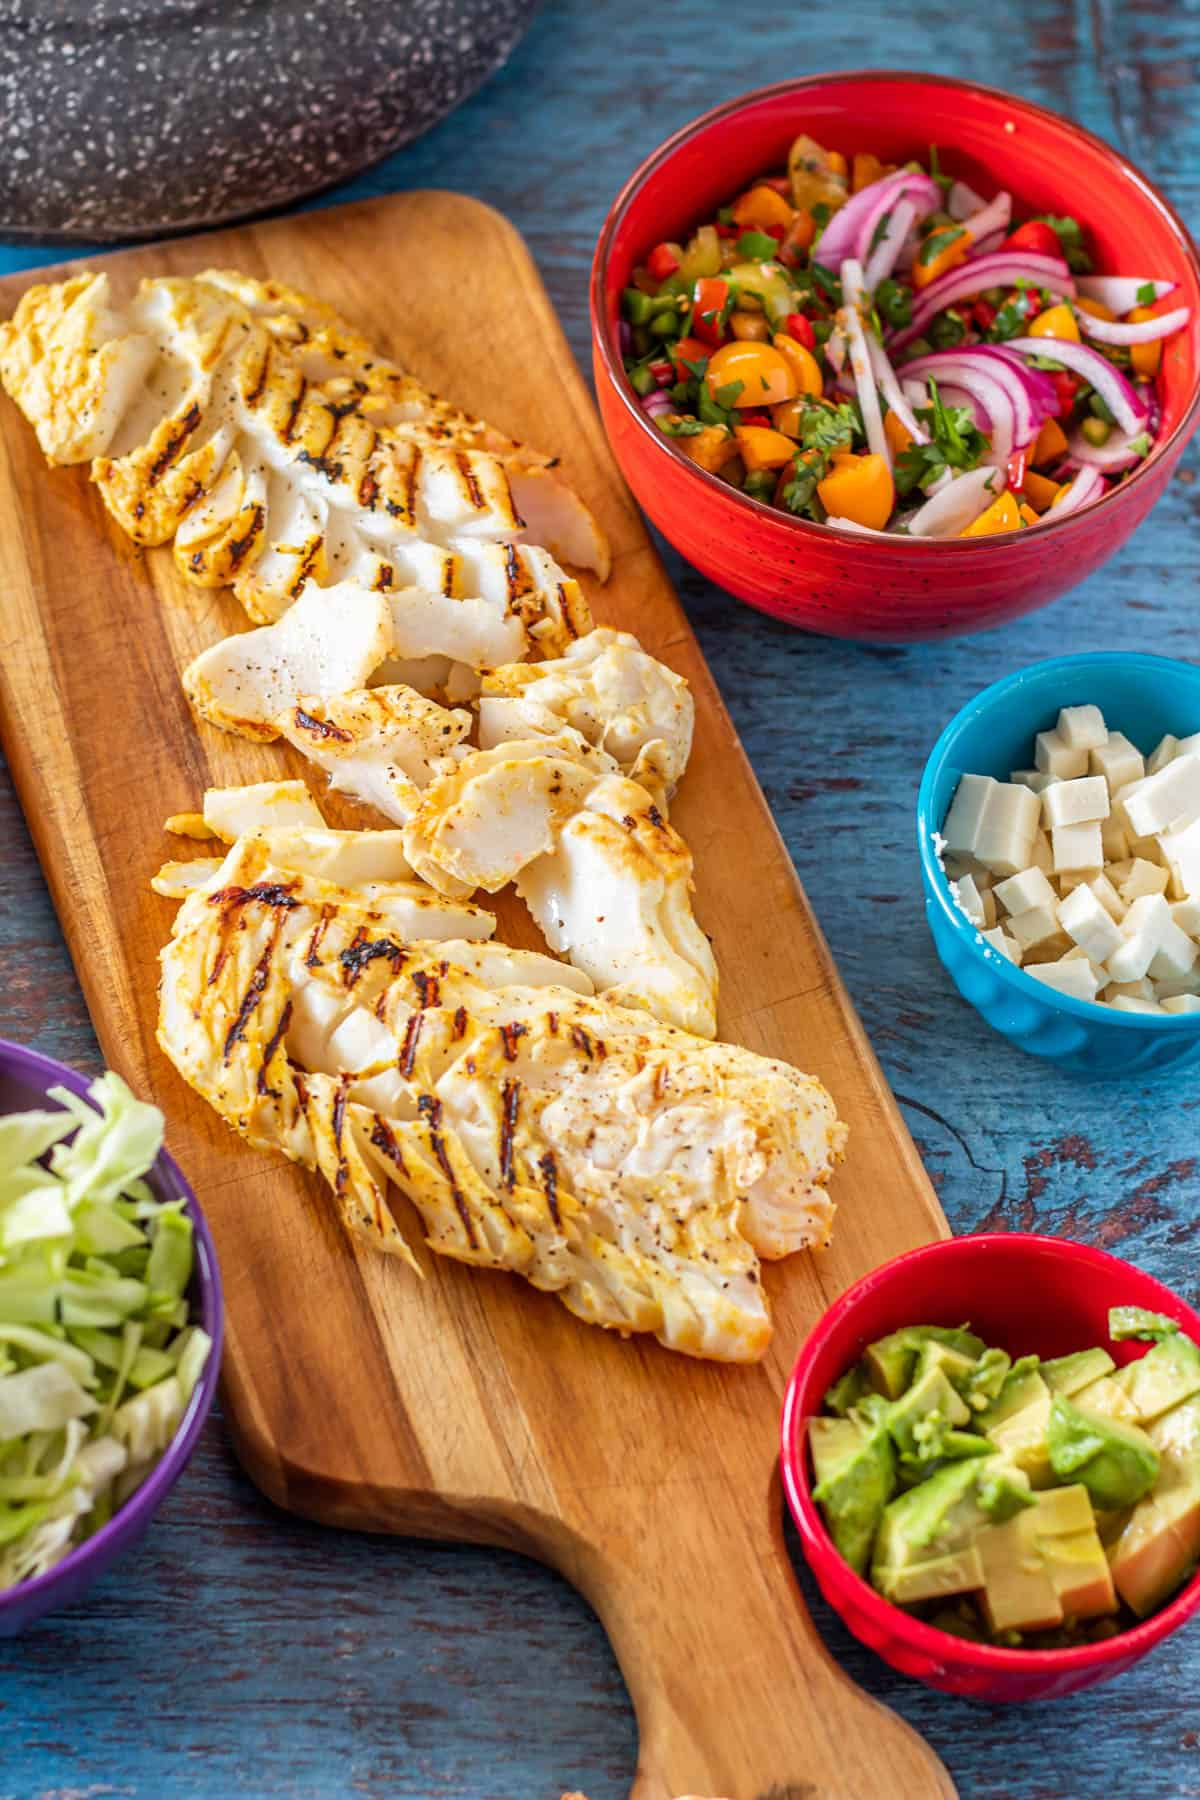 All of the ingredients for Peruvian-inspired fish tacos: Prepared fish, goldenberry pico de gallo, queso fresco, avocado, shredded cabbage!